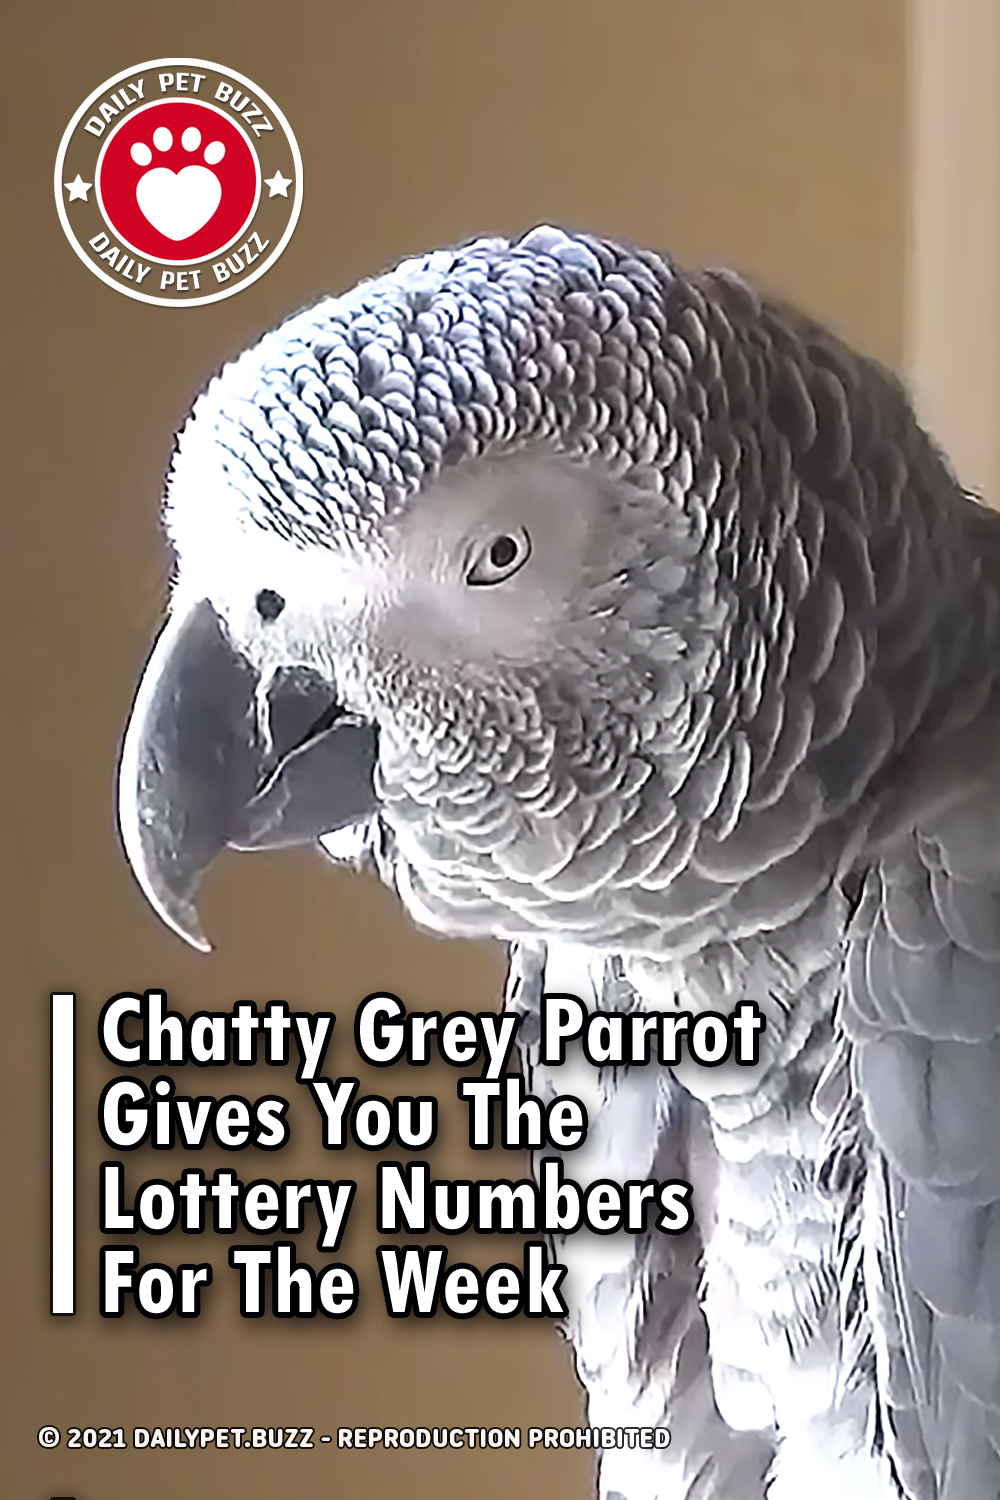 Chatty Grey Parrot Gives You The Lottery Numbers For The Week